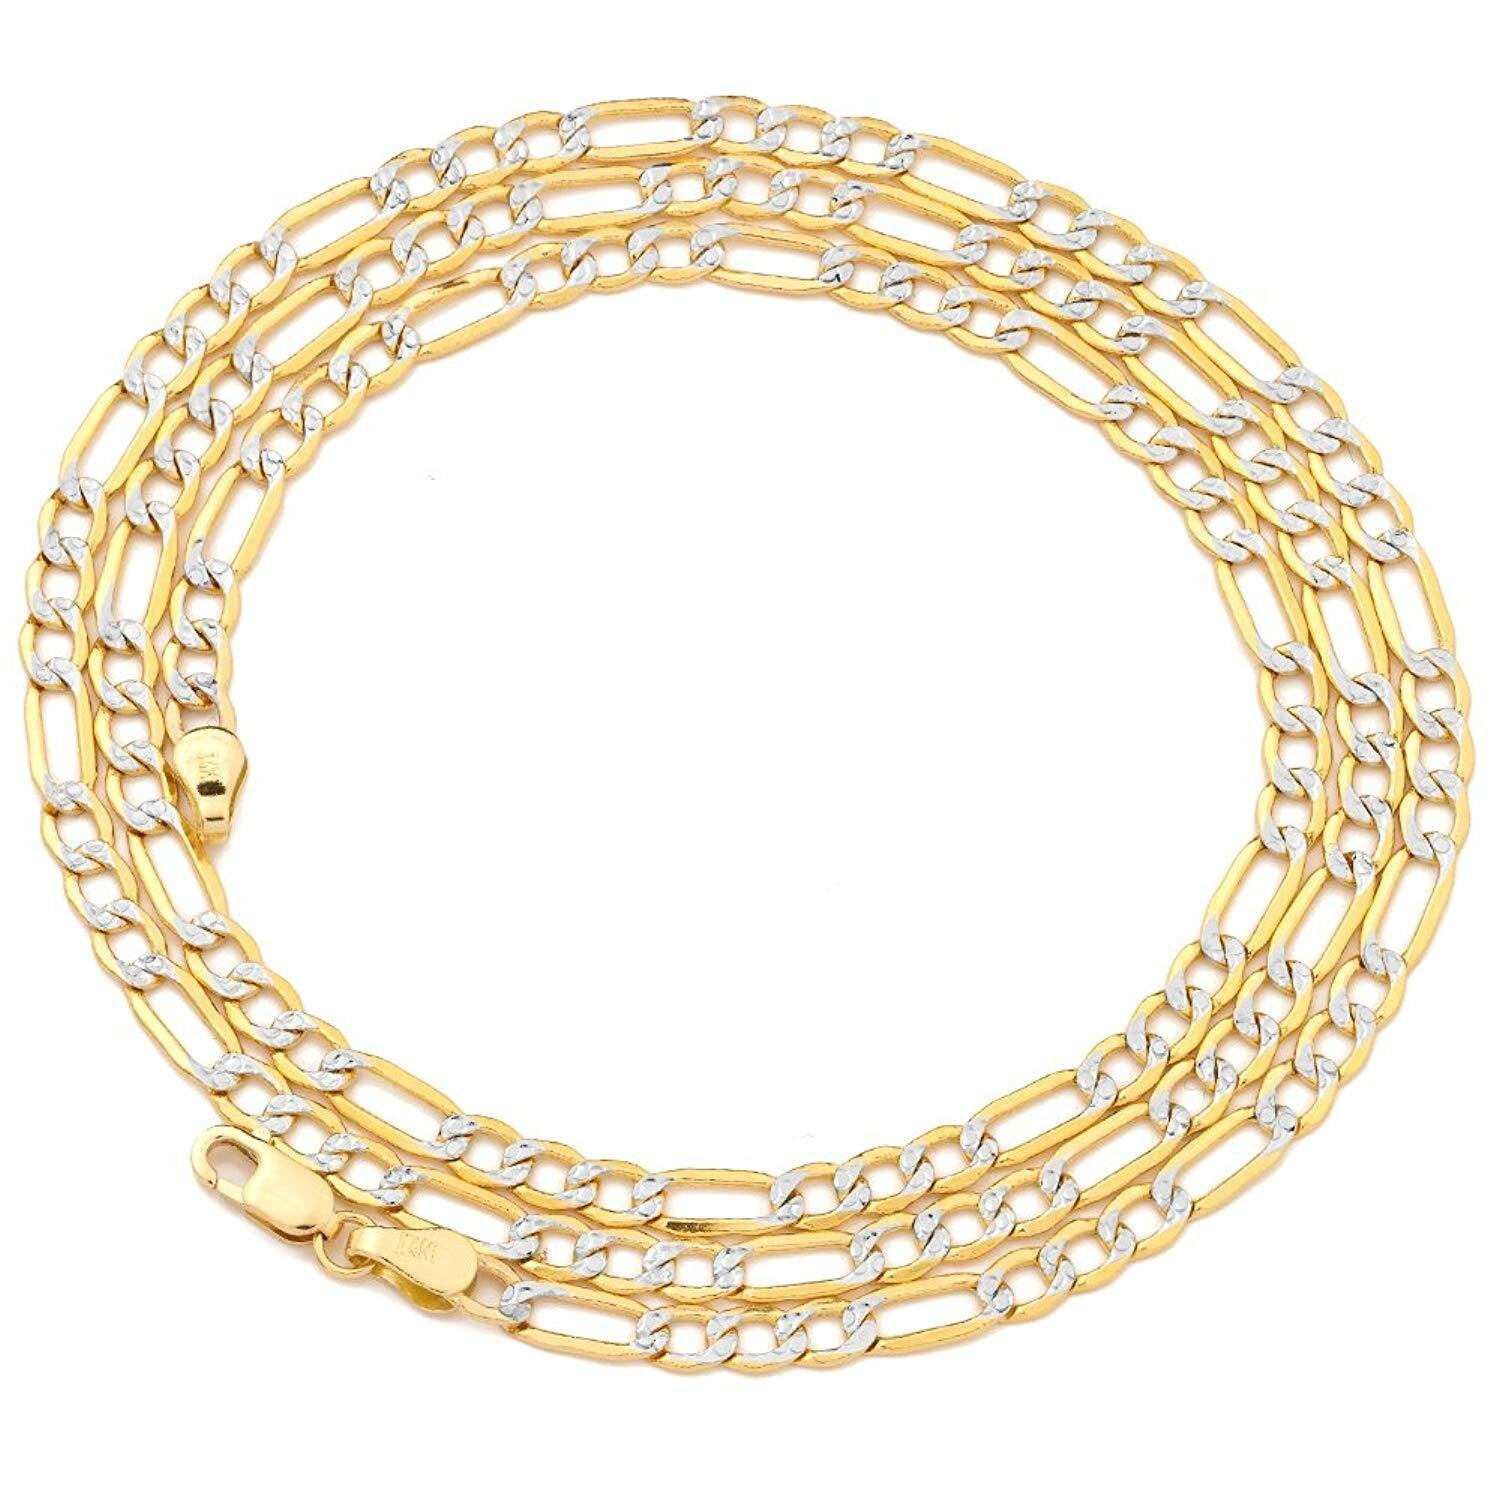 "7.2MM Pave Figaro Yellow Gold Chain .925 Sterling Silver Length ""8-32"" Inches"